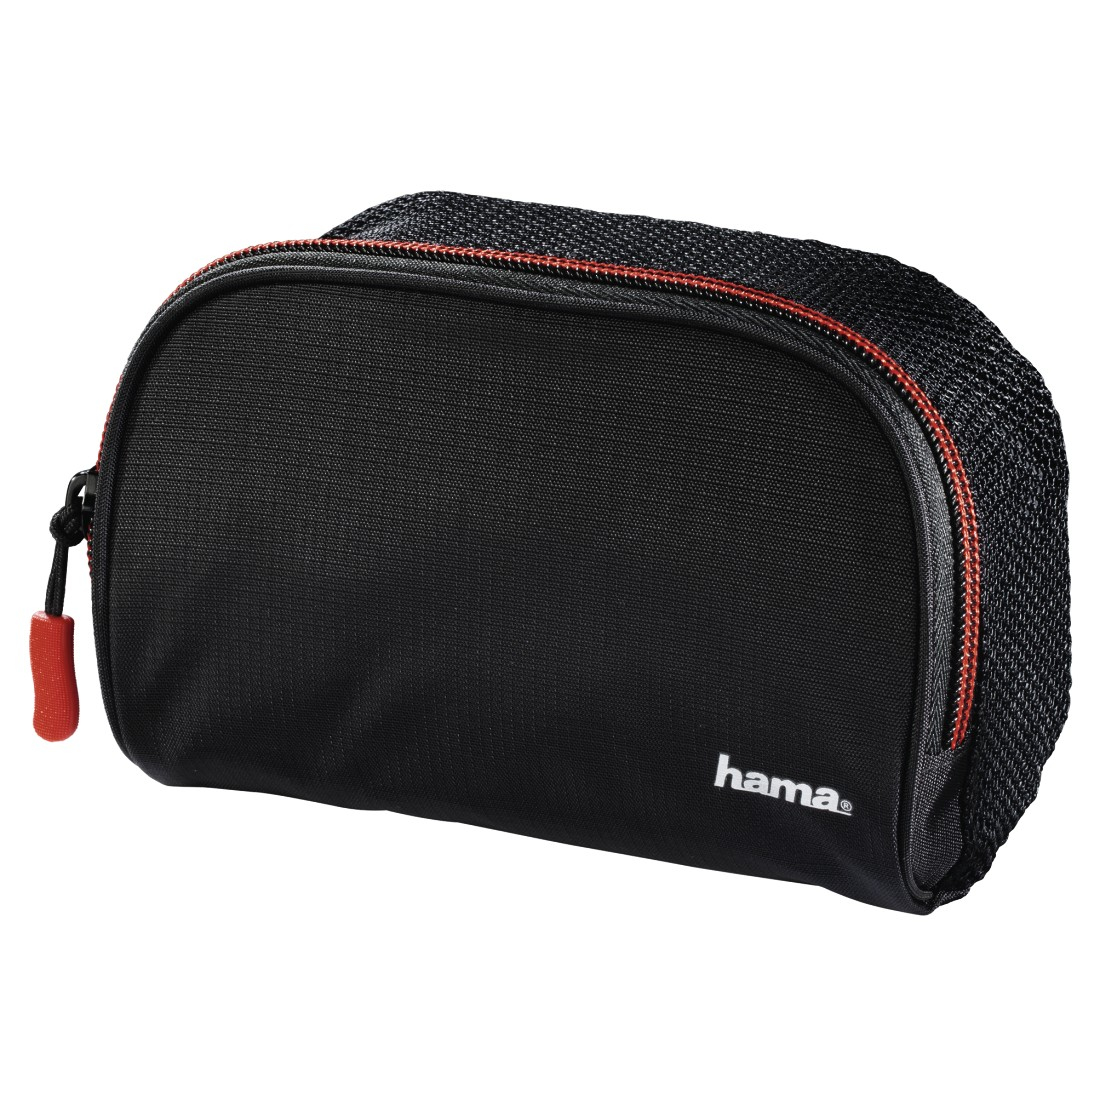 Hama Fancy S Camera Accessory Pouch black